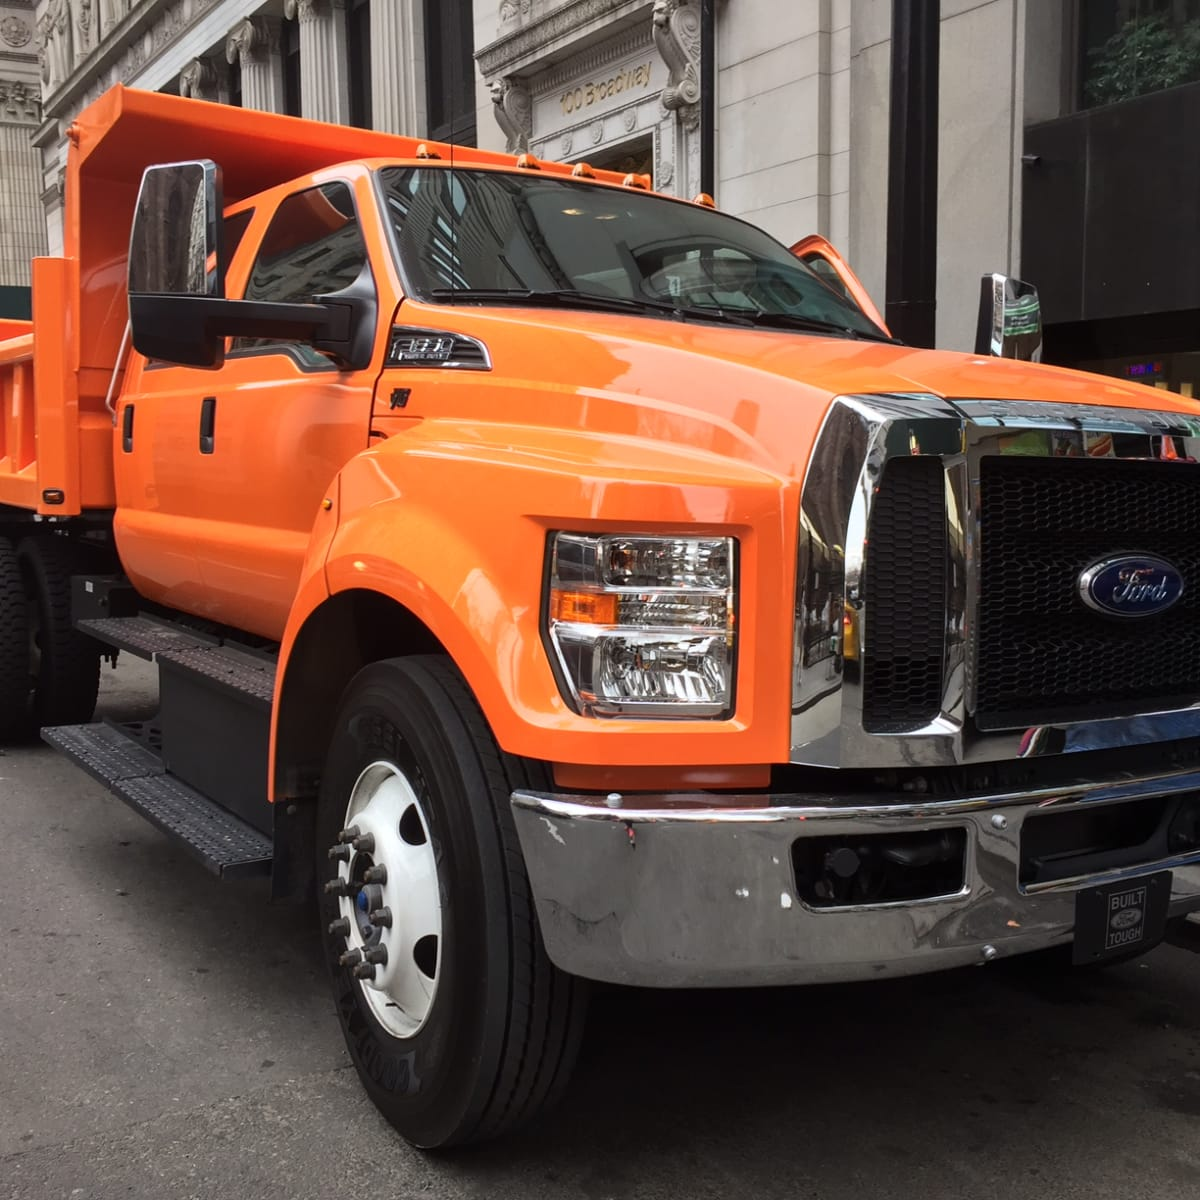 Facts About Trucks and Their Types